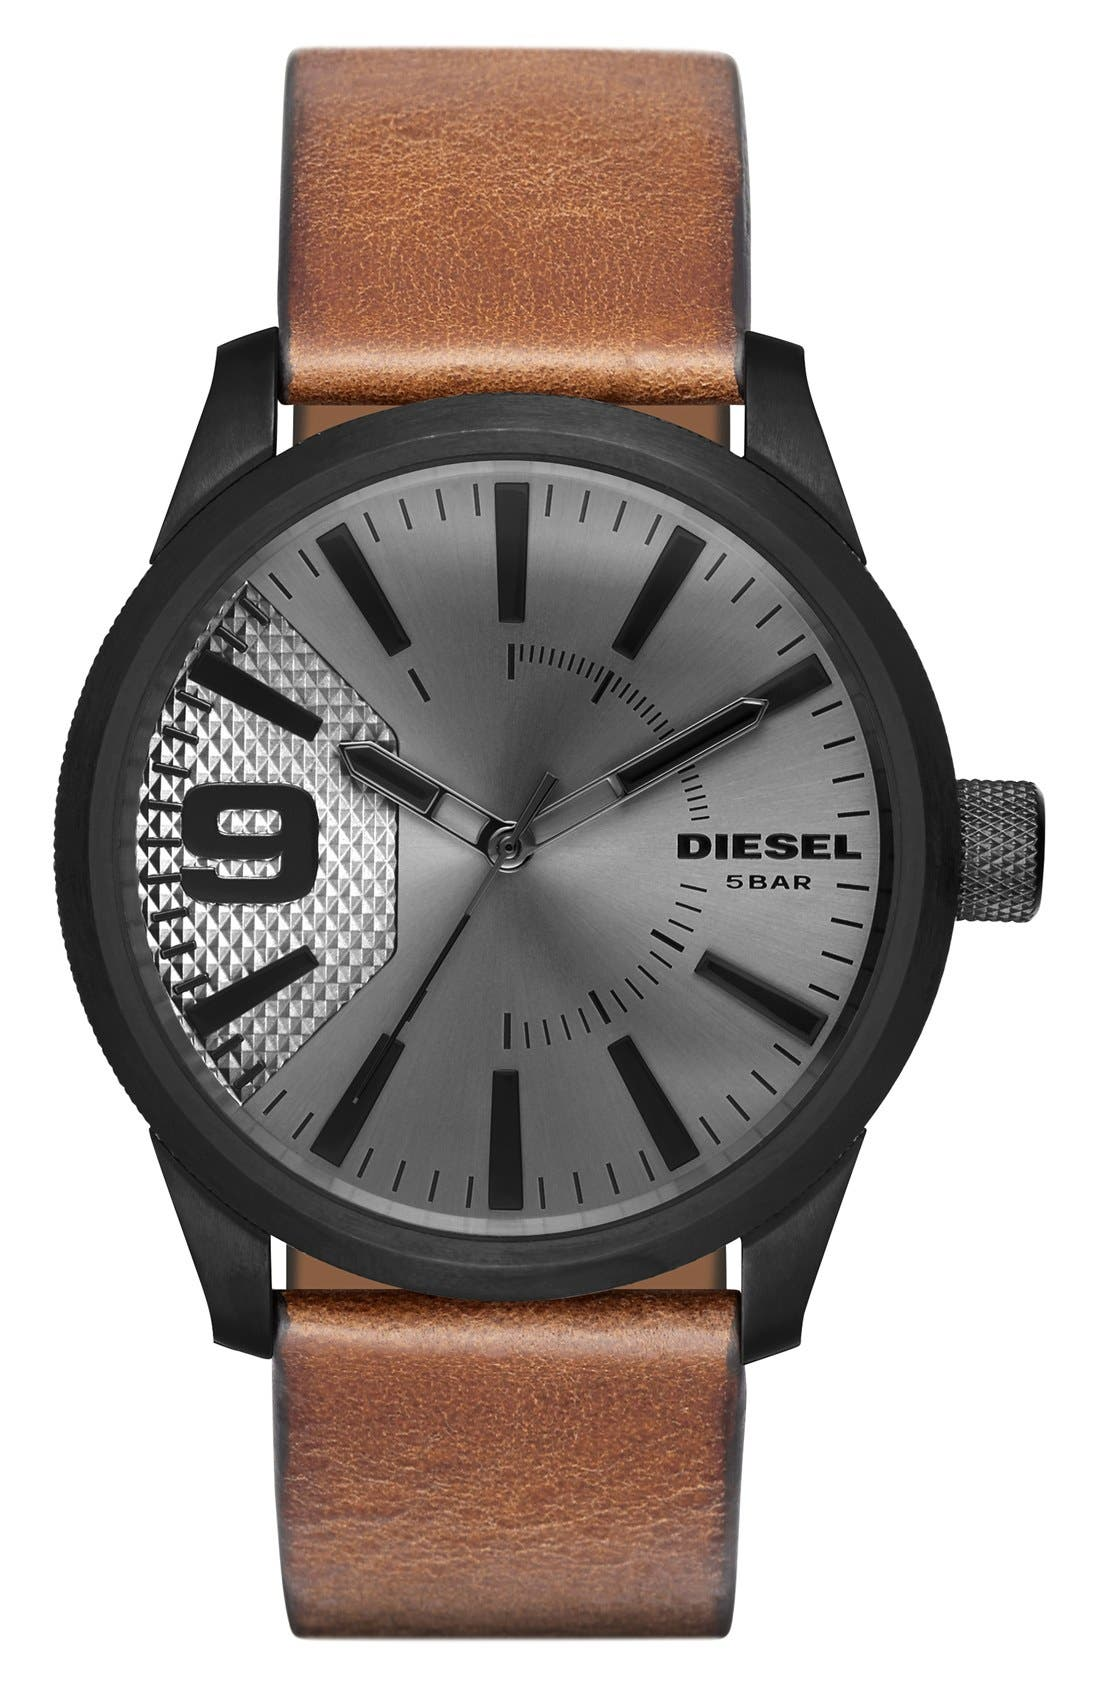 DIESEL<SUP>®</SUP> 'The Rasp' Leather Strap Watch, 46mm, Main, color, BLACK